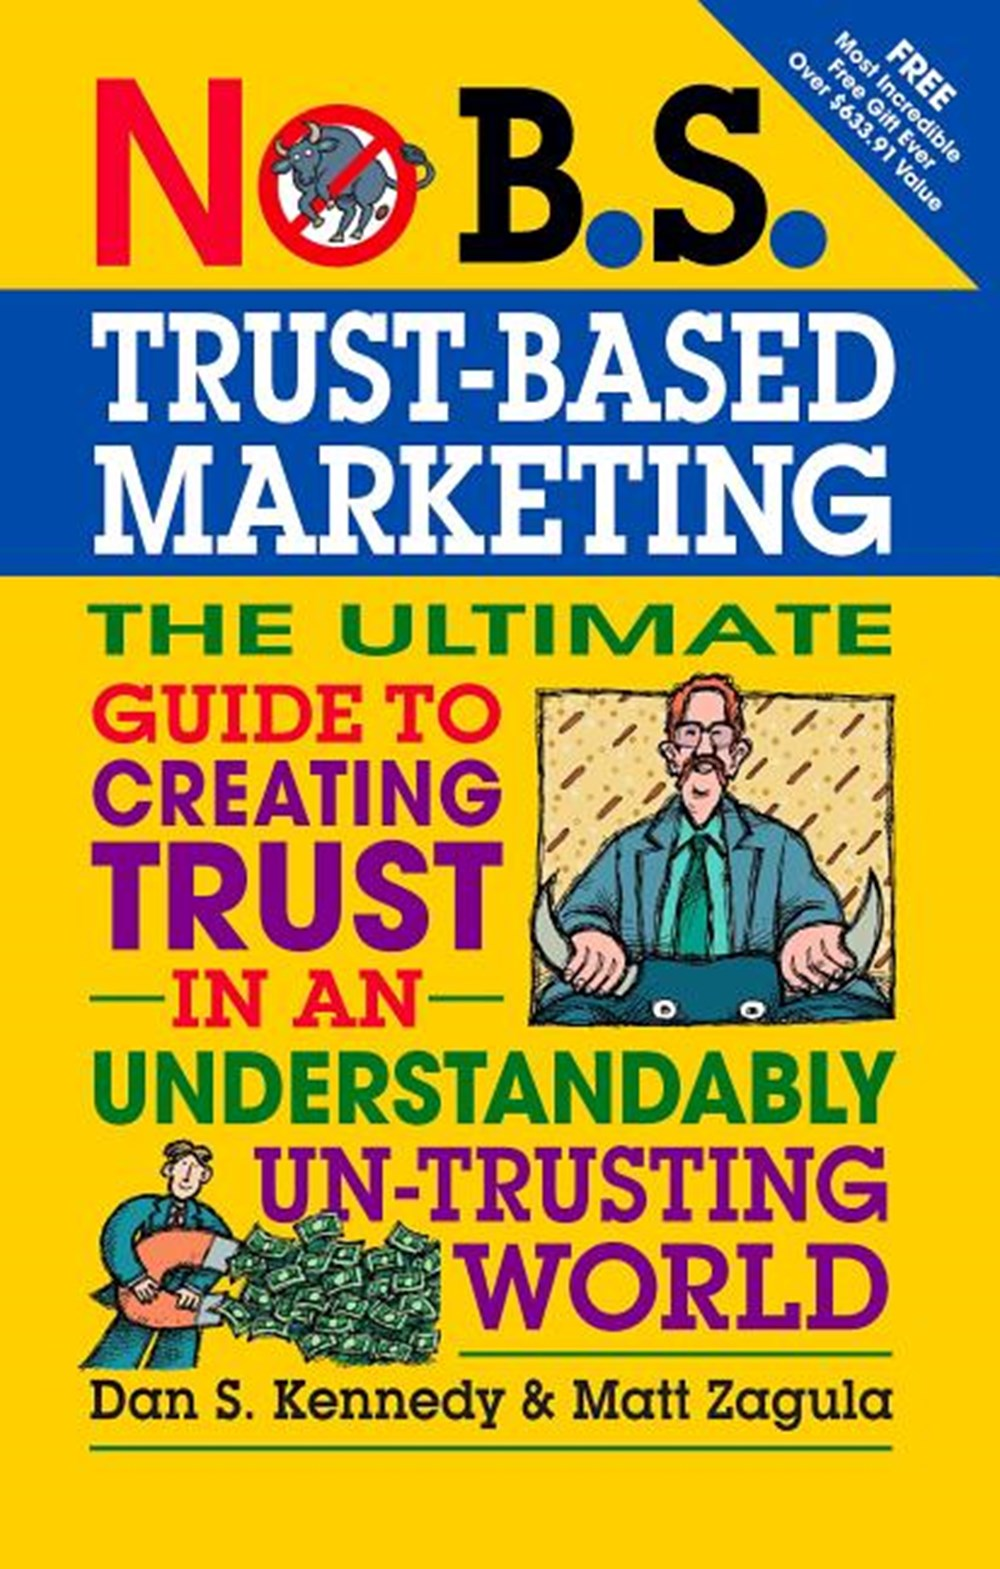 No B.S. Trust Based Marketing The Ultimate Guide to Creating Trust in an Understandibly Un-Trusting